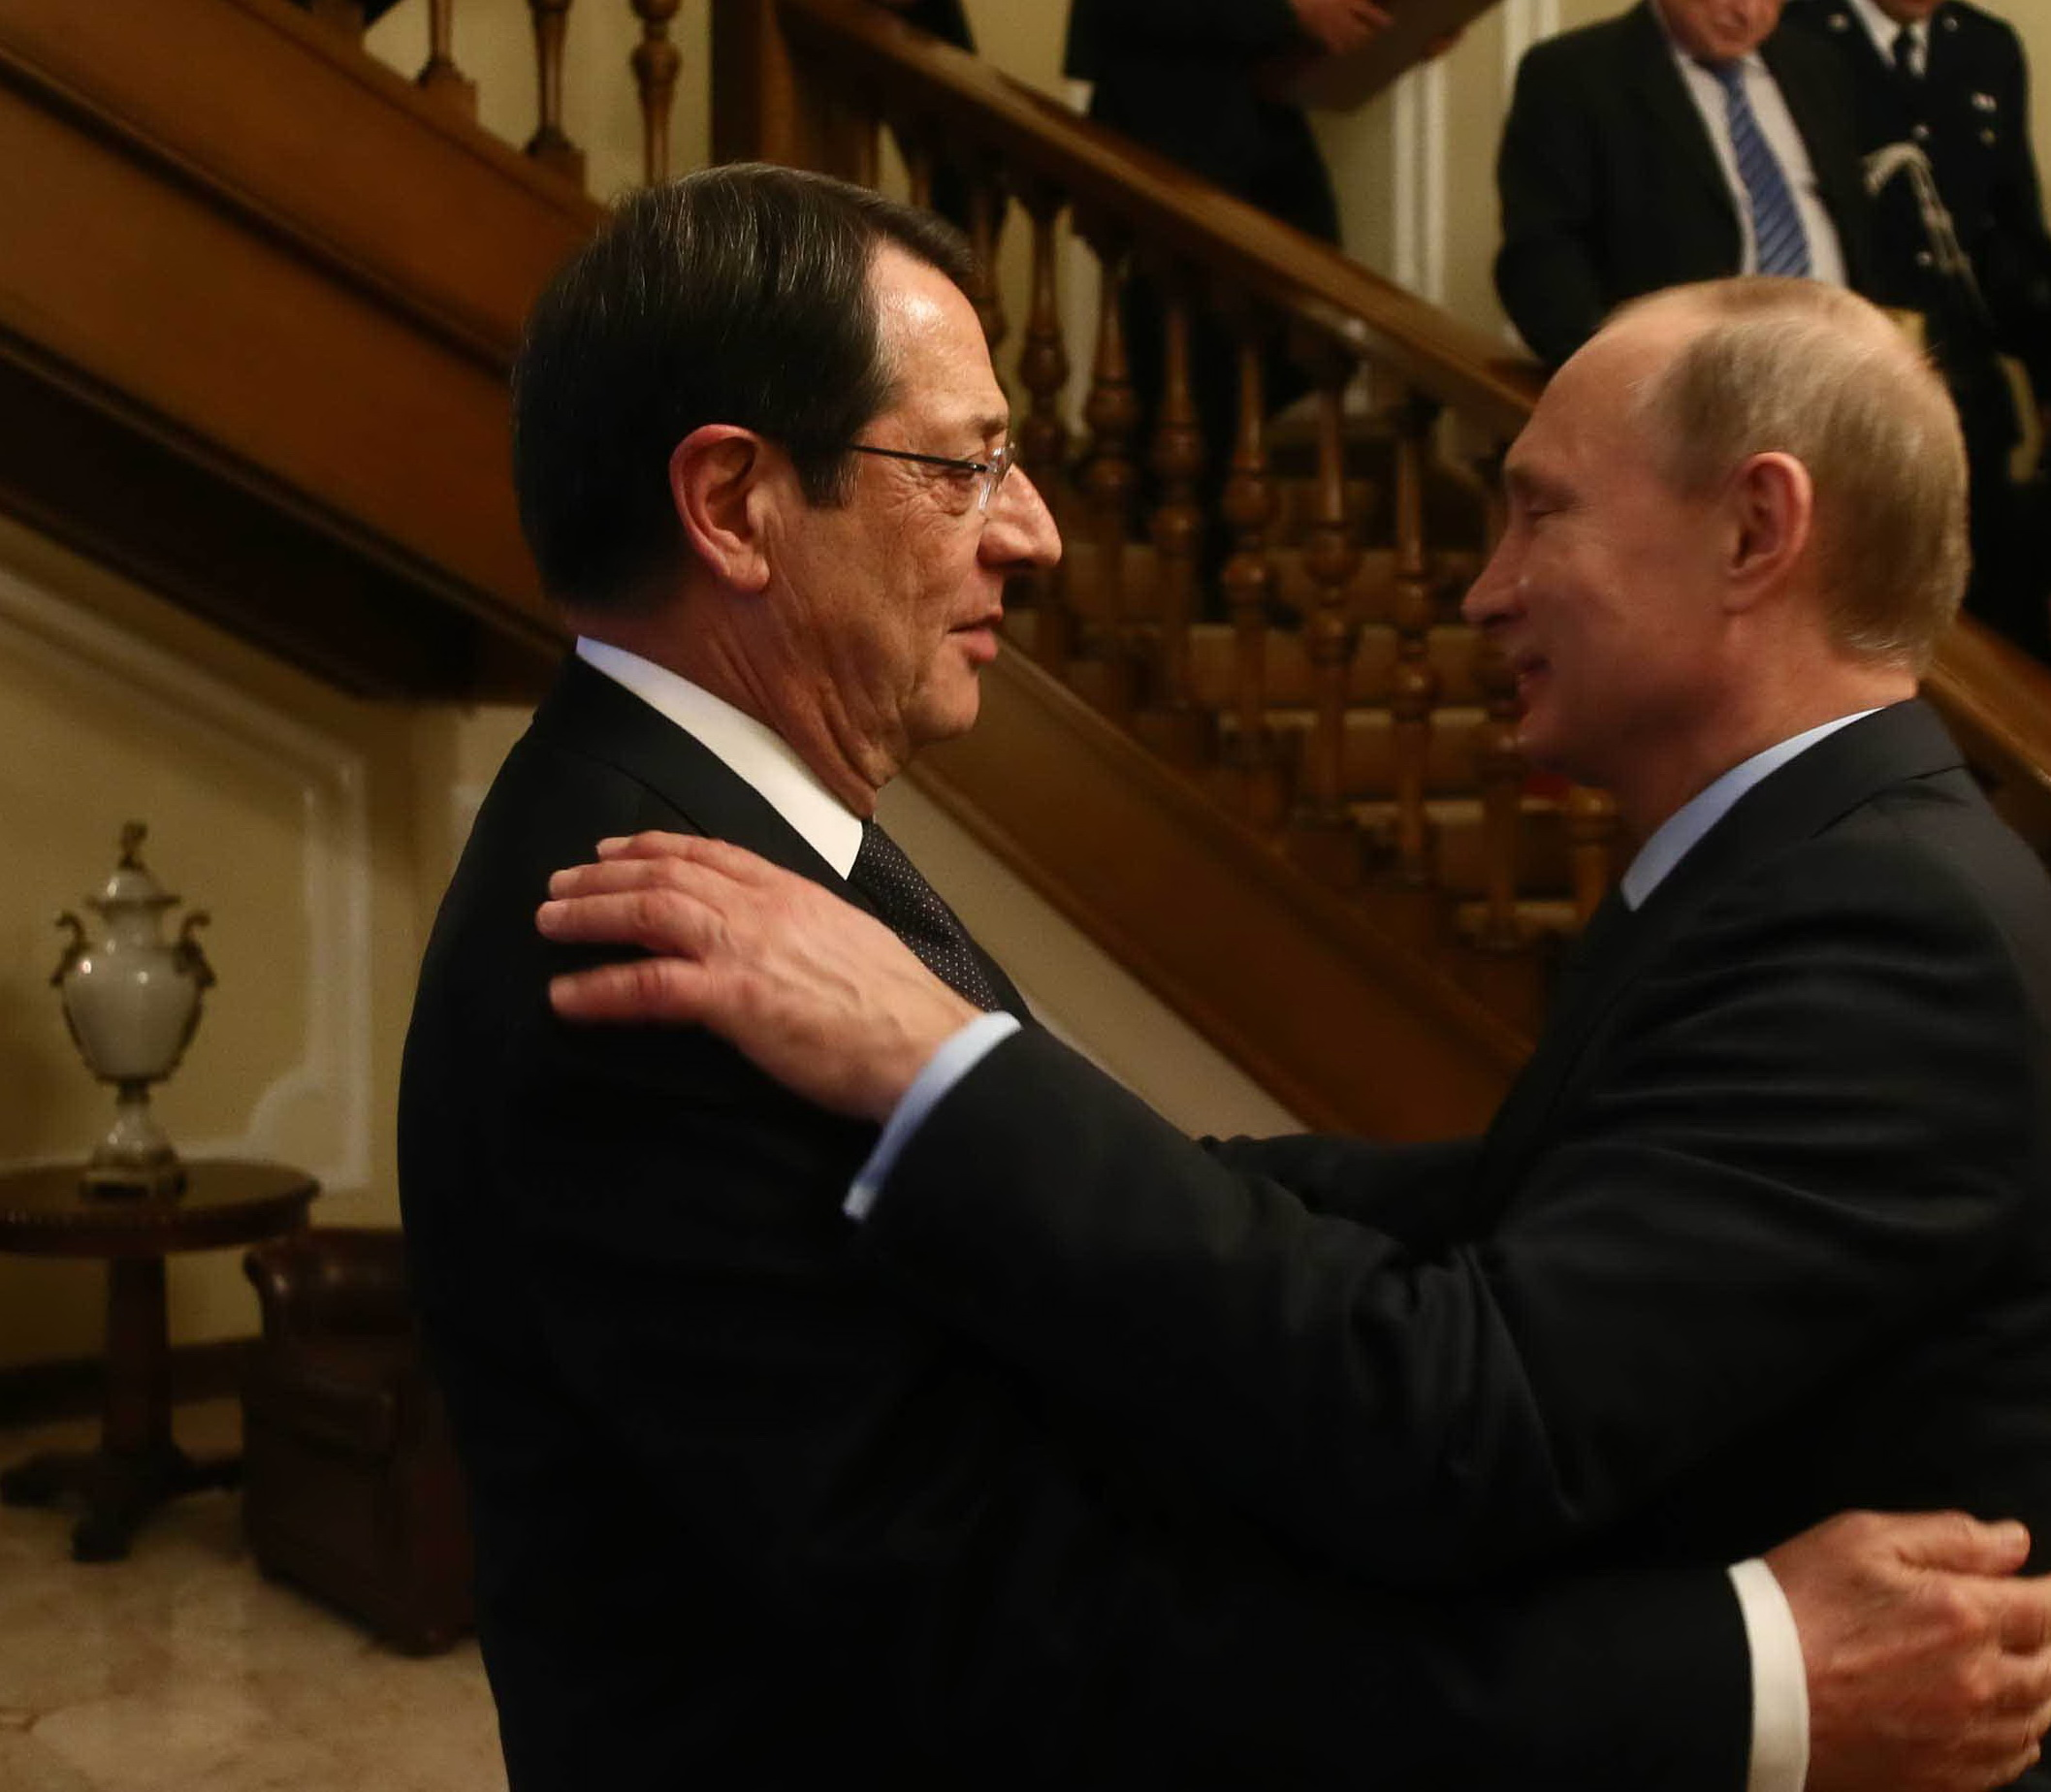 Cyprus: Russia's Potemkin Village in the European Union?